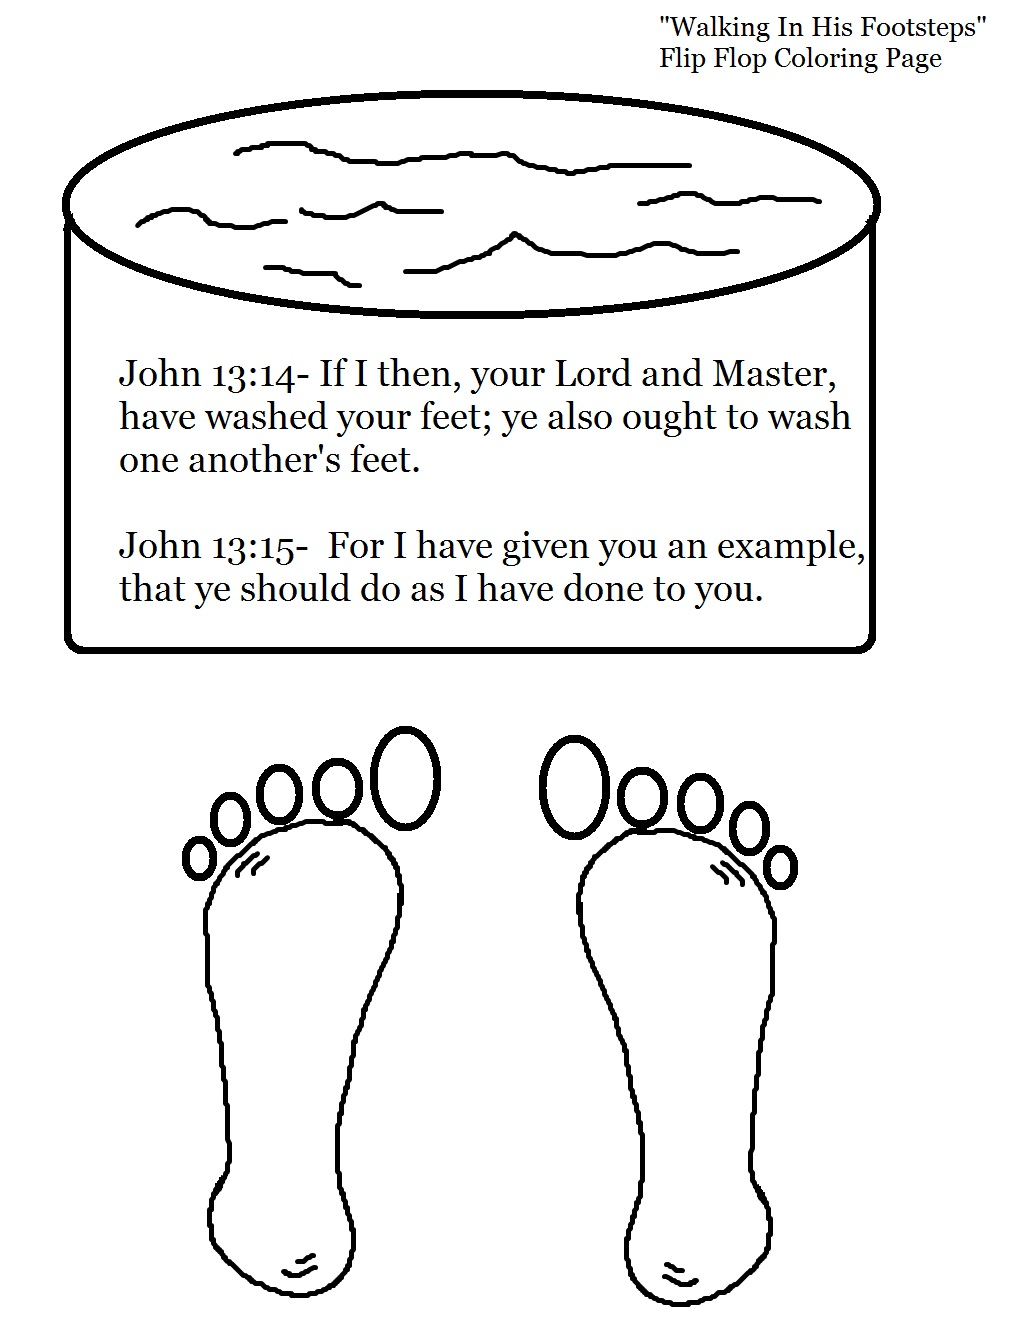 Clipart of mary washing jesus feet clipart black and white Footsteps Of Jesus Clipart - Clipart Kid clipart black and white